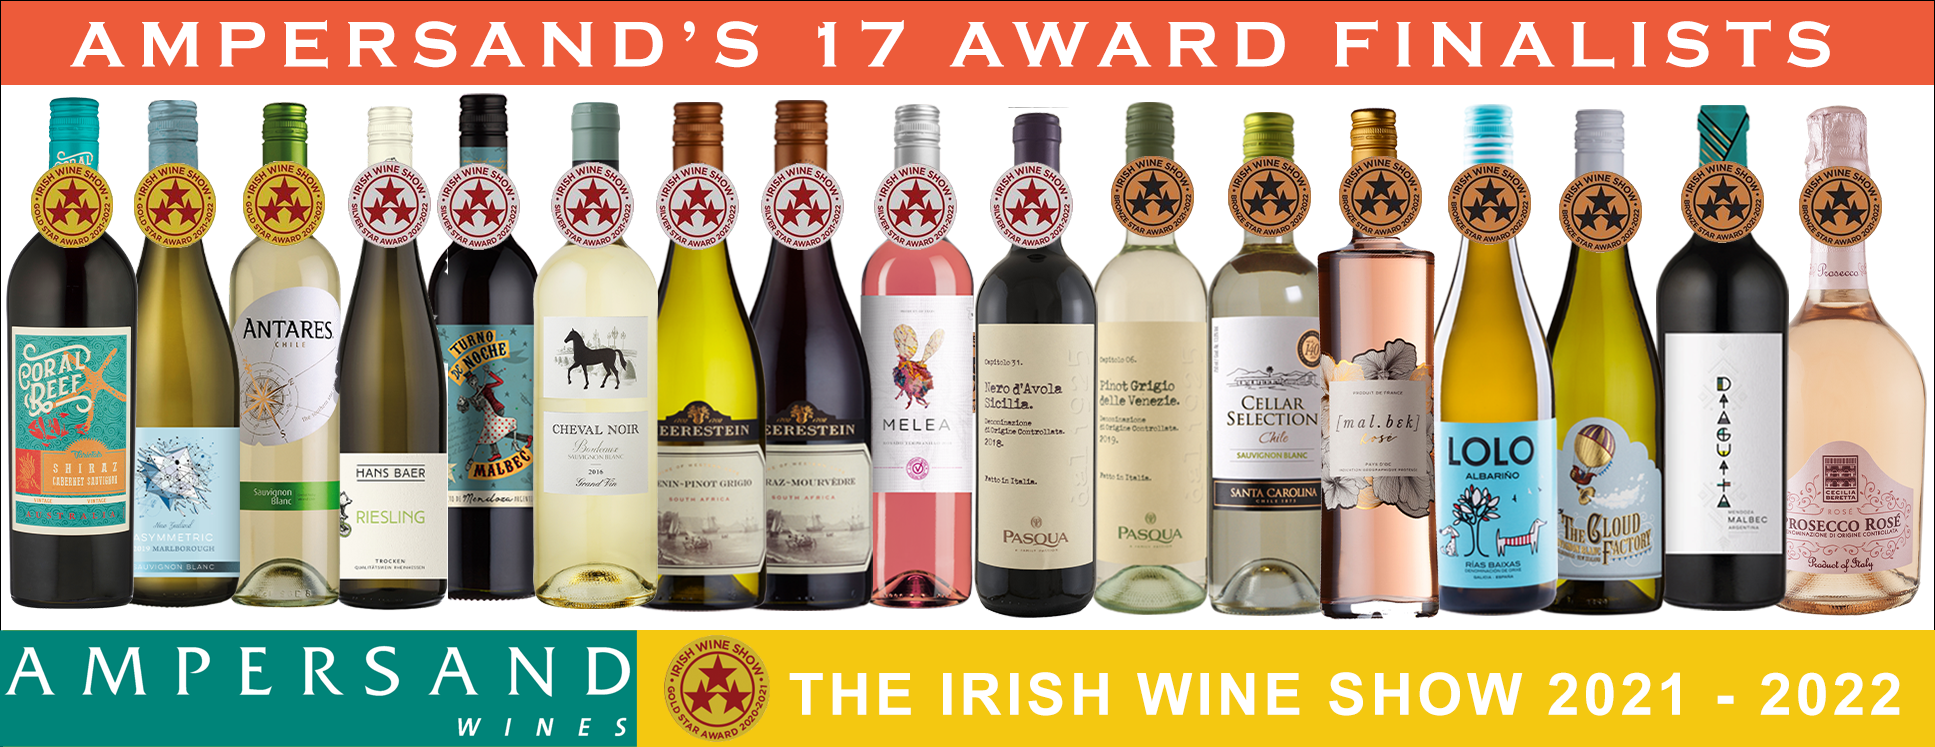 AMPERSAND WINES WIN 3 GOLD, 7 SILVER & 7 BRONZE AT THE IRISH WINE SHOW AWARDS